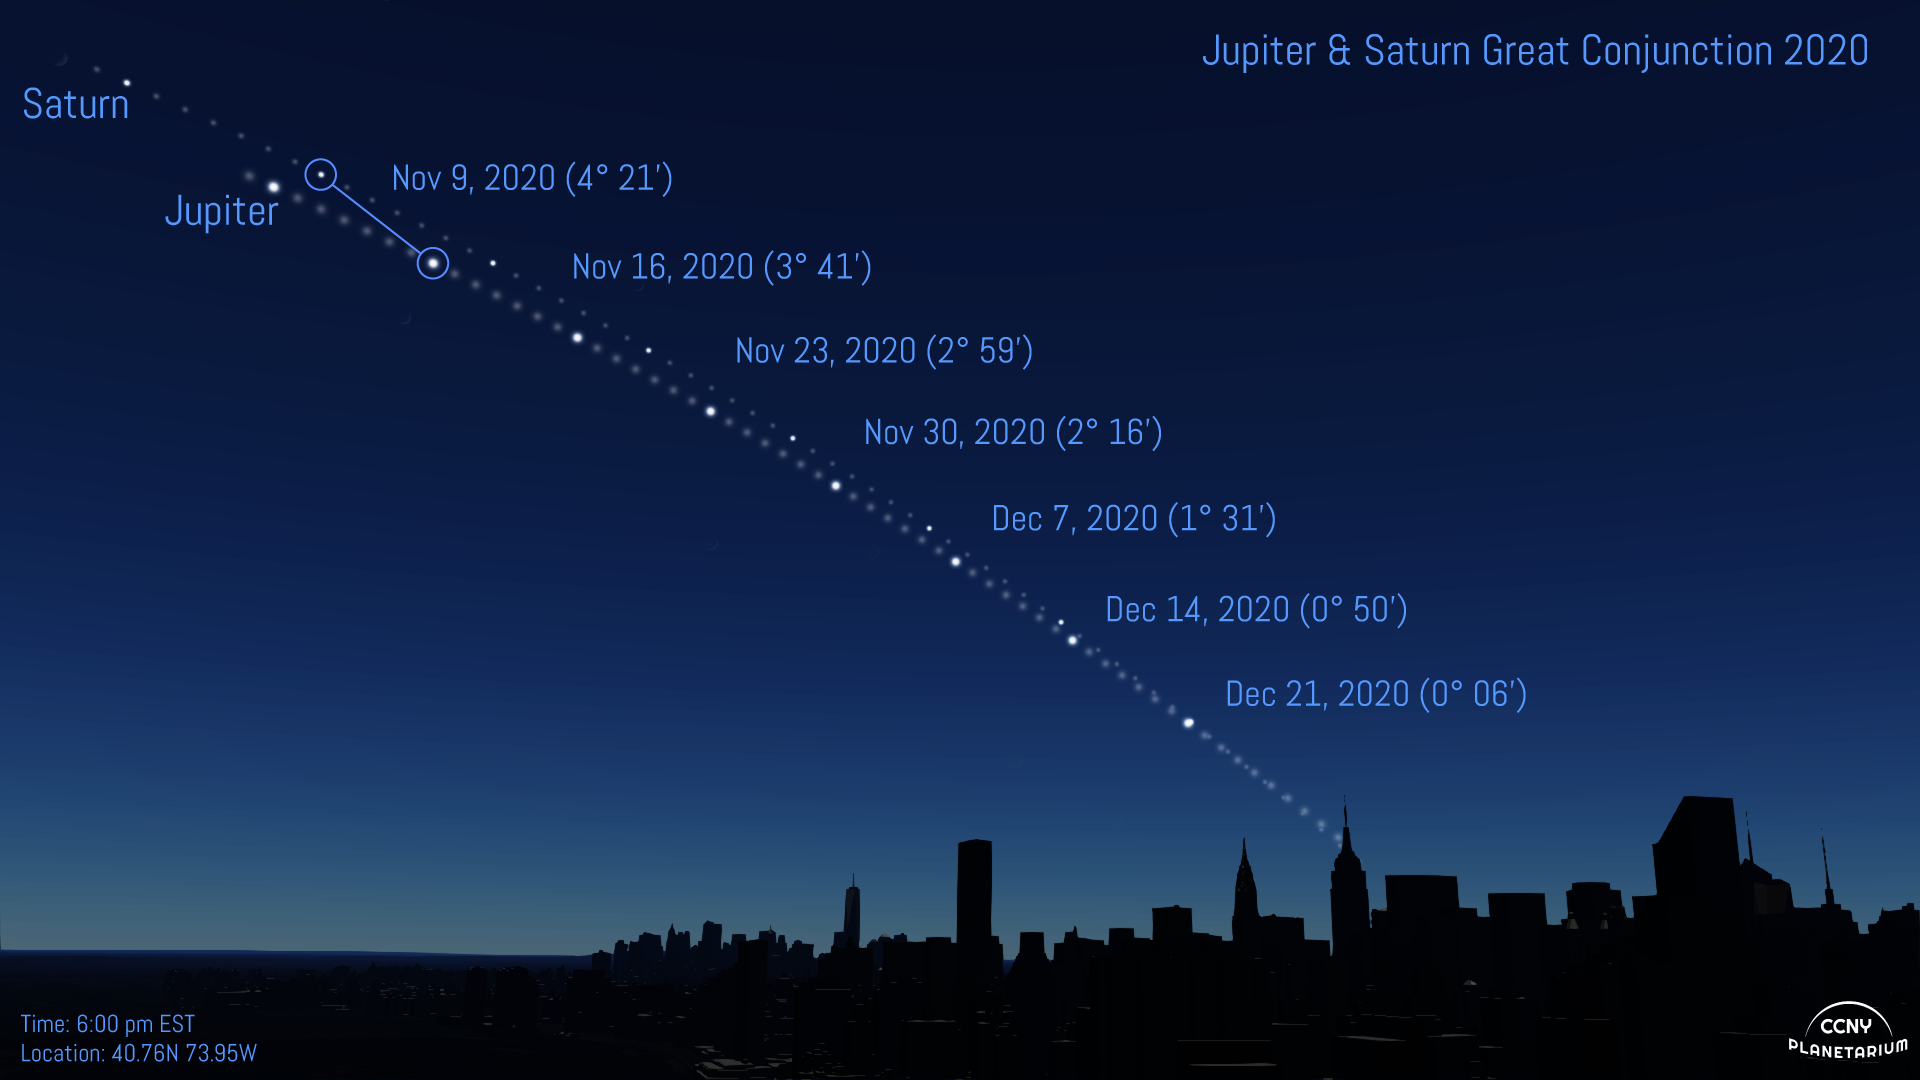 The Great Conjunction Pictures 2020